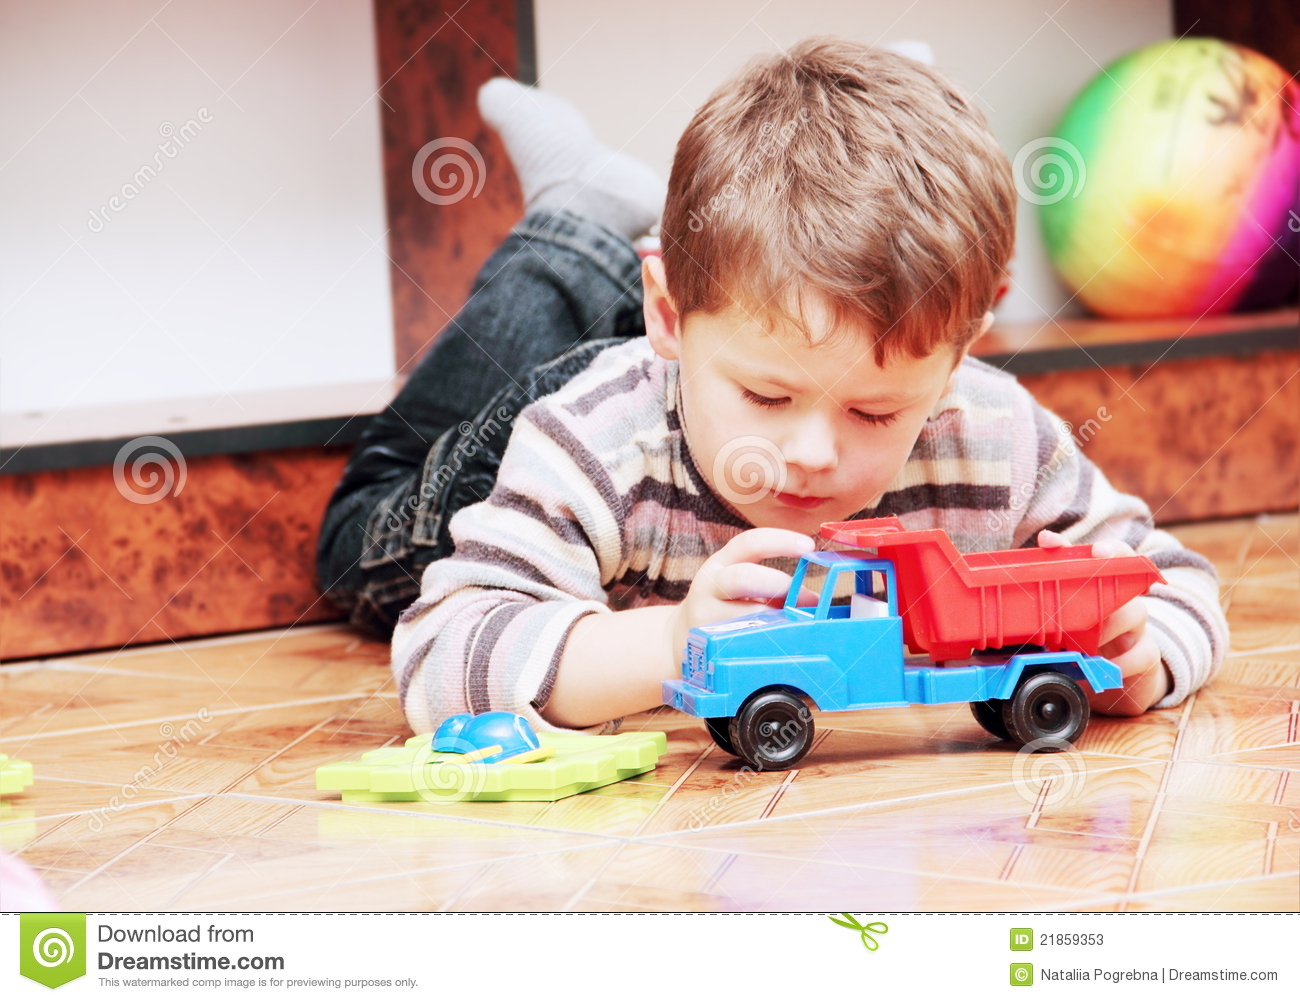 Little Boy With Toy Car : Little boy playing with toy car stock photos image